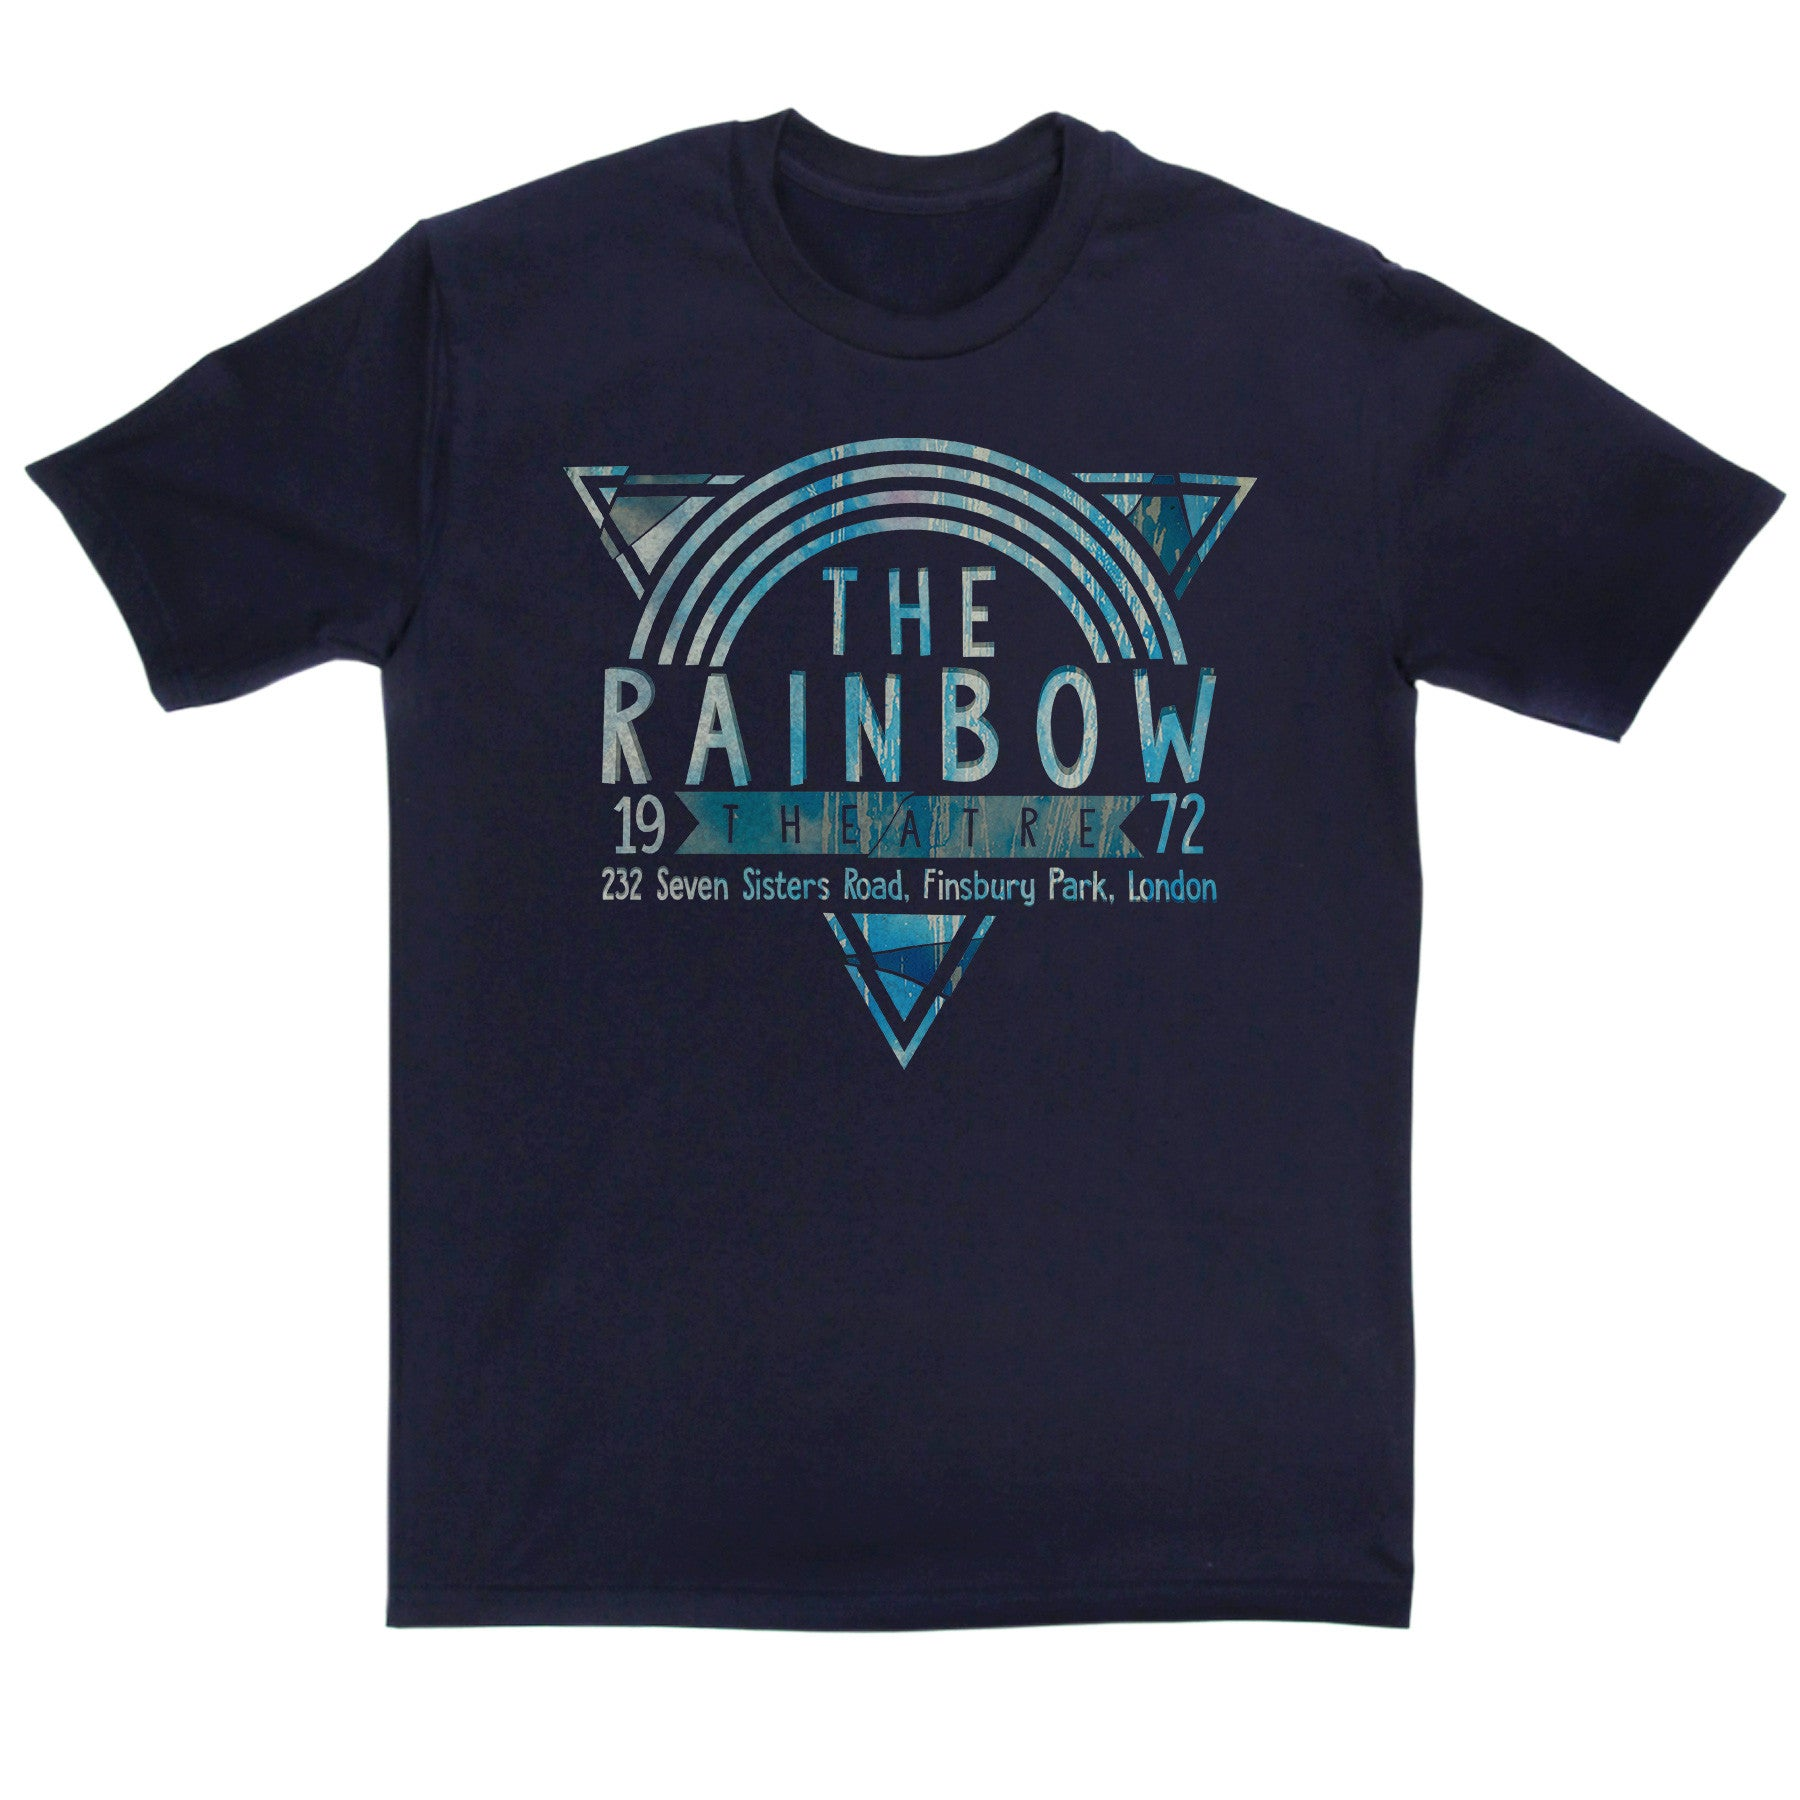 The Rock Box Series - The Rainbow Theatre T Shirt